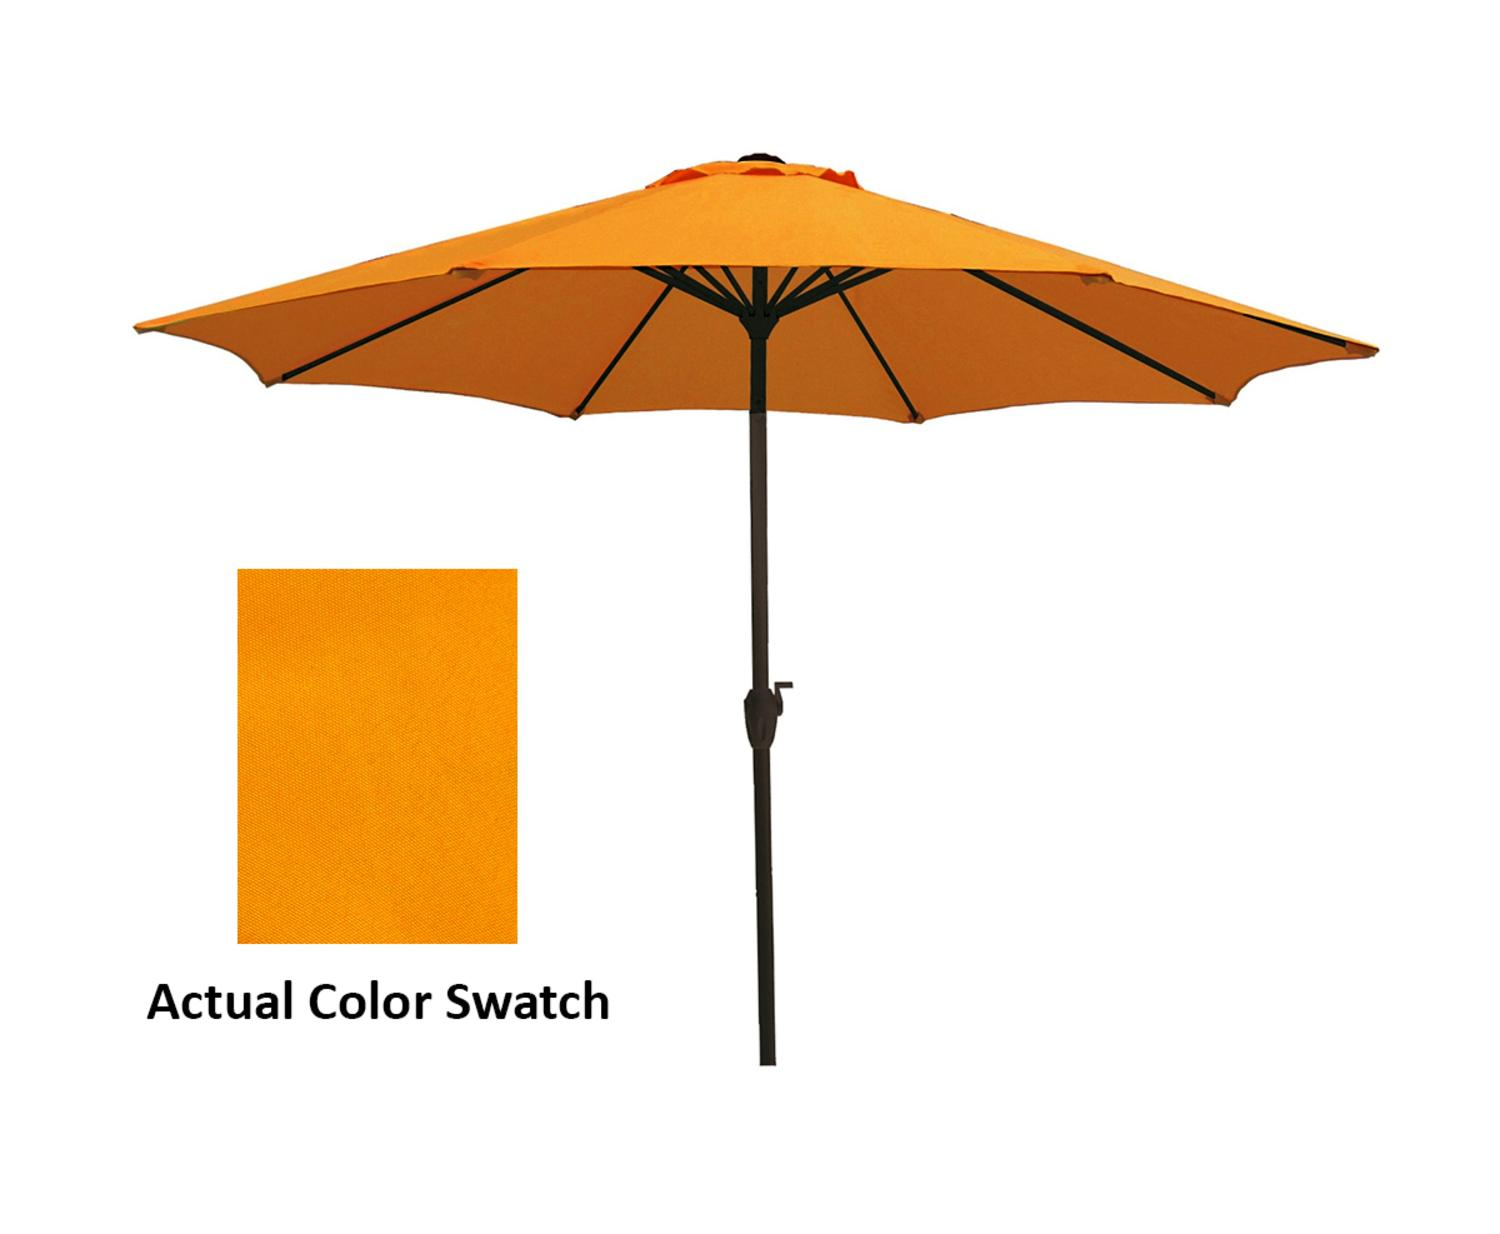 9' Outdoor Patio Market Umbrella with Hand Crank and Tilt Marigold Yellow by LB International